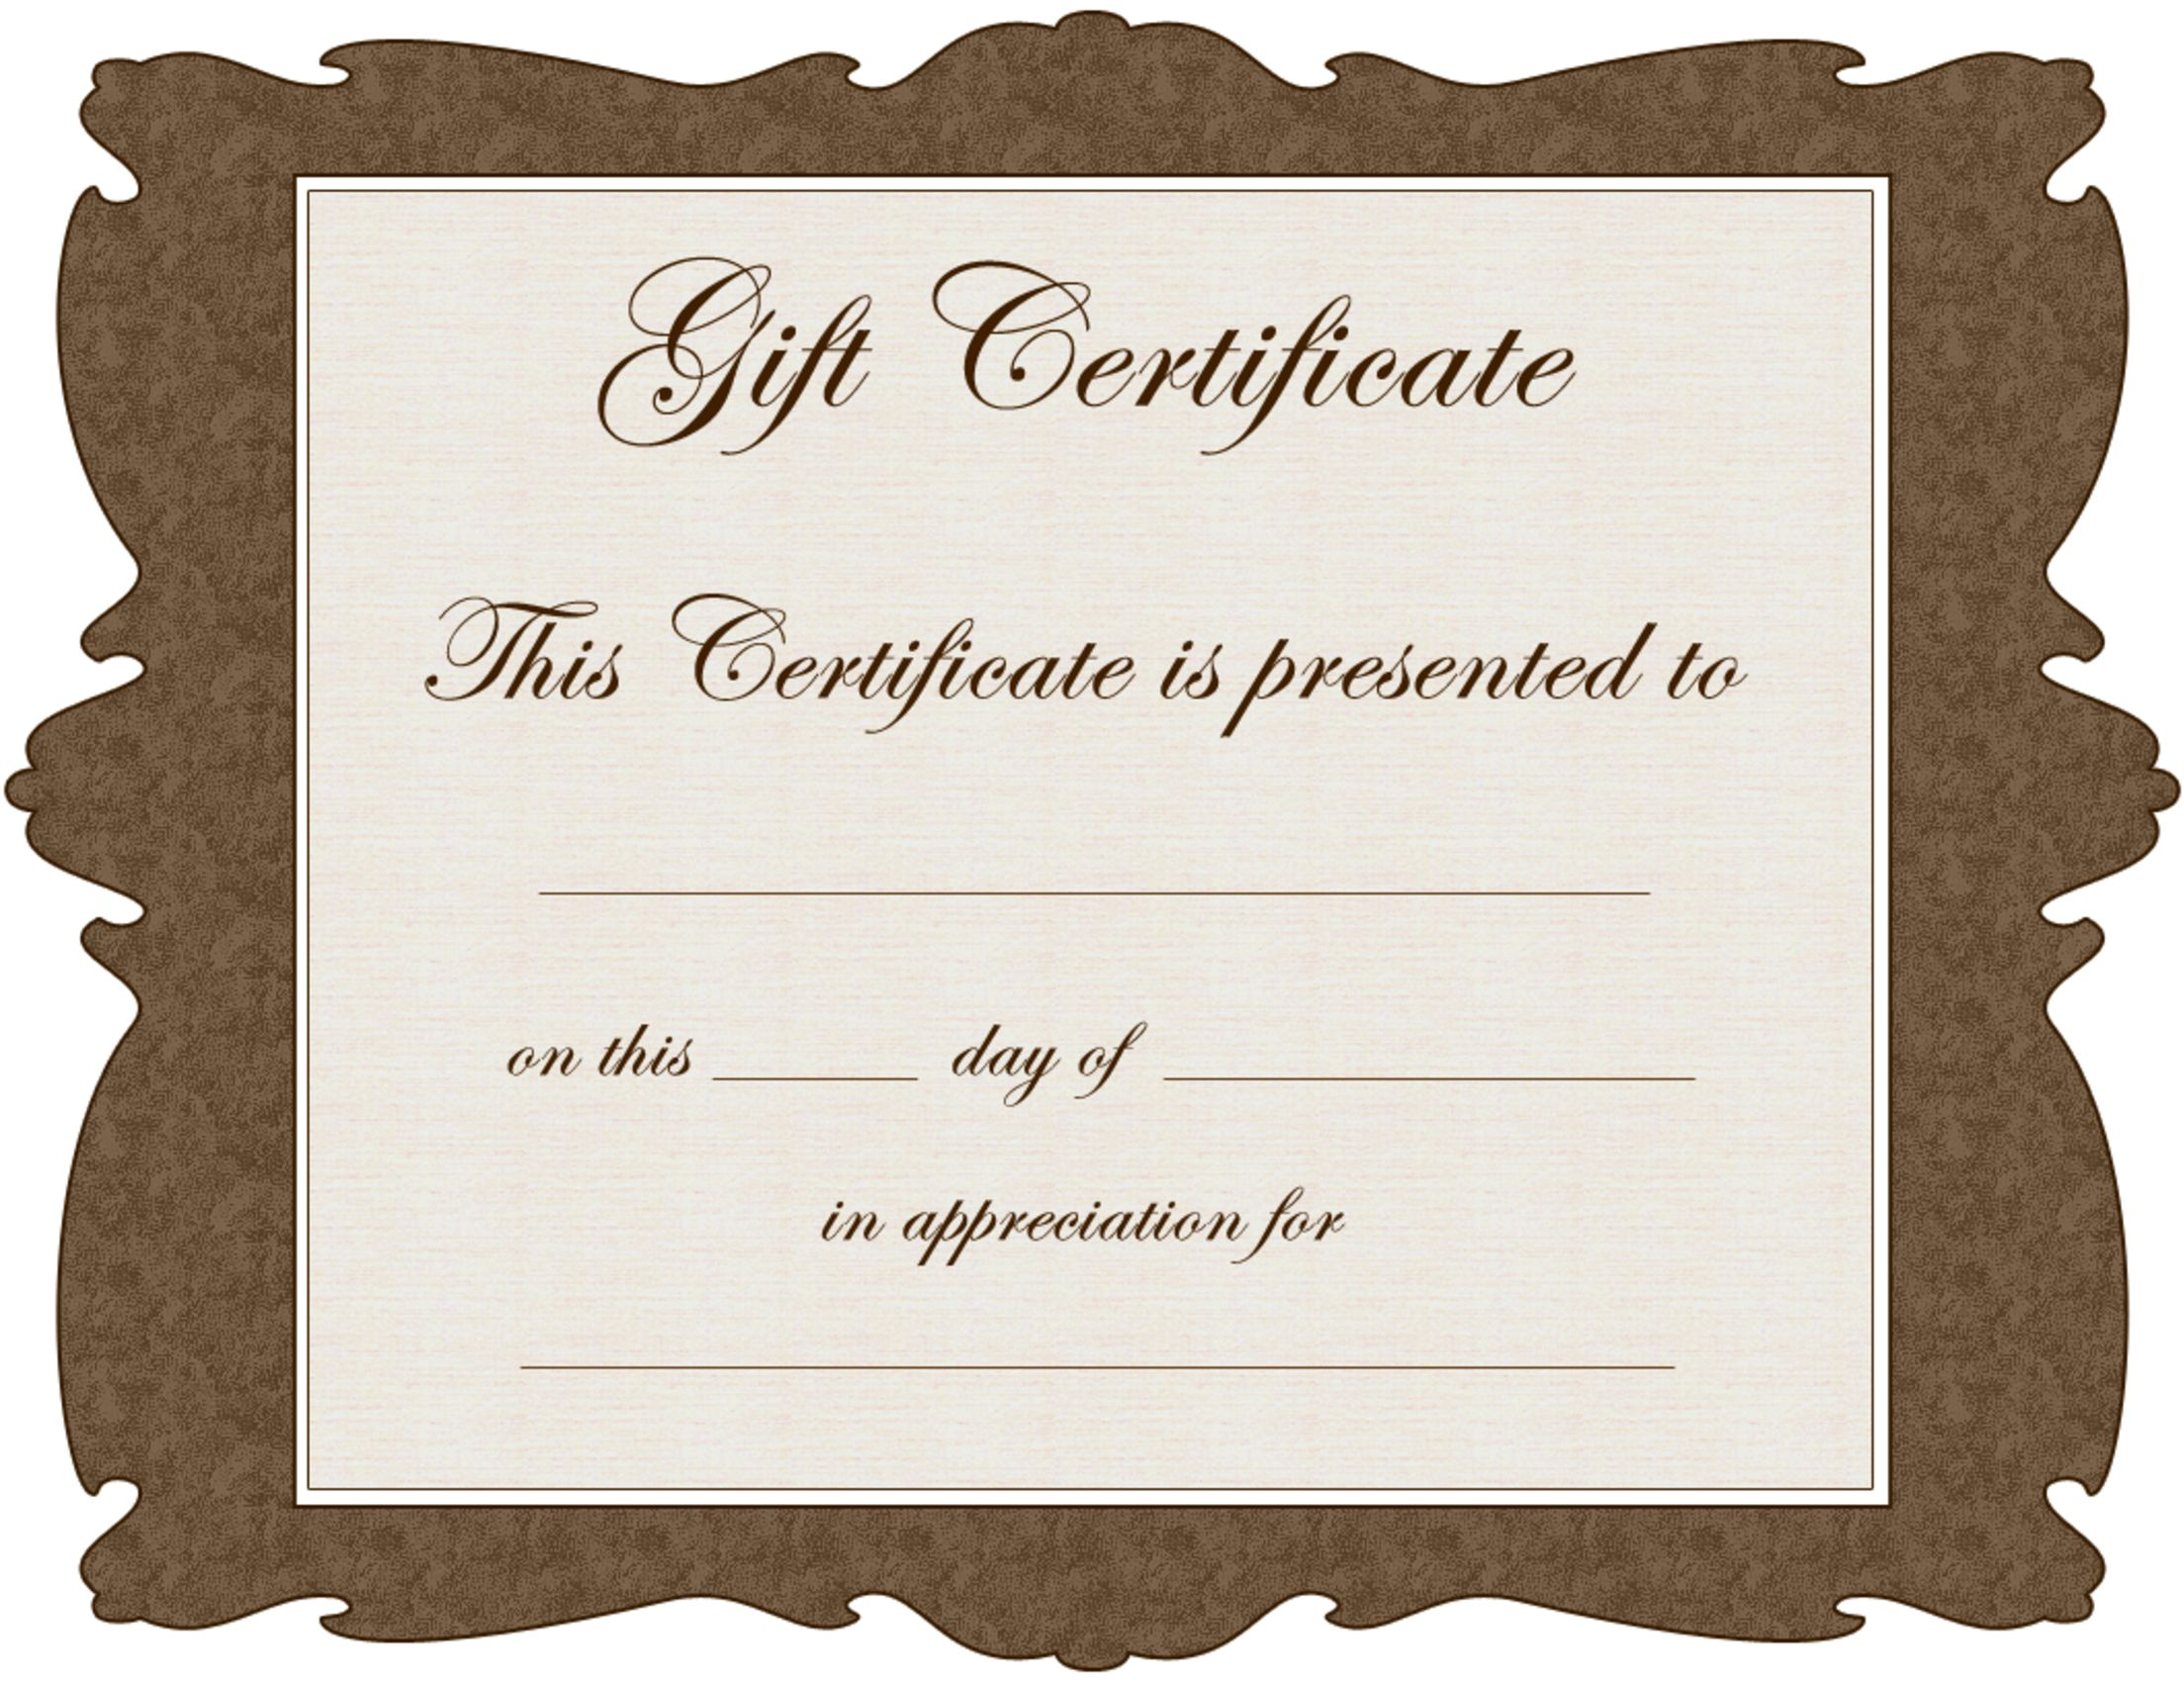 Quality 7 Babysitting Gift Certificate Template Ideas In 2021 Certificate Templates Gift Certificate Template Word Free Gift Certificate Template Free babysitting gift certificate template